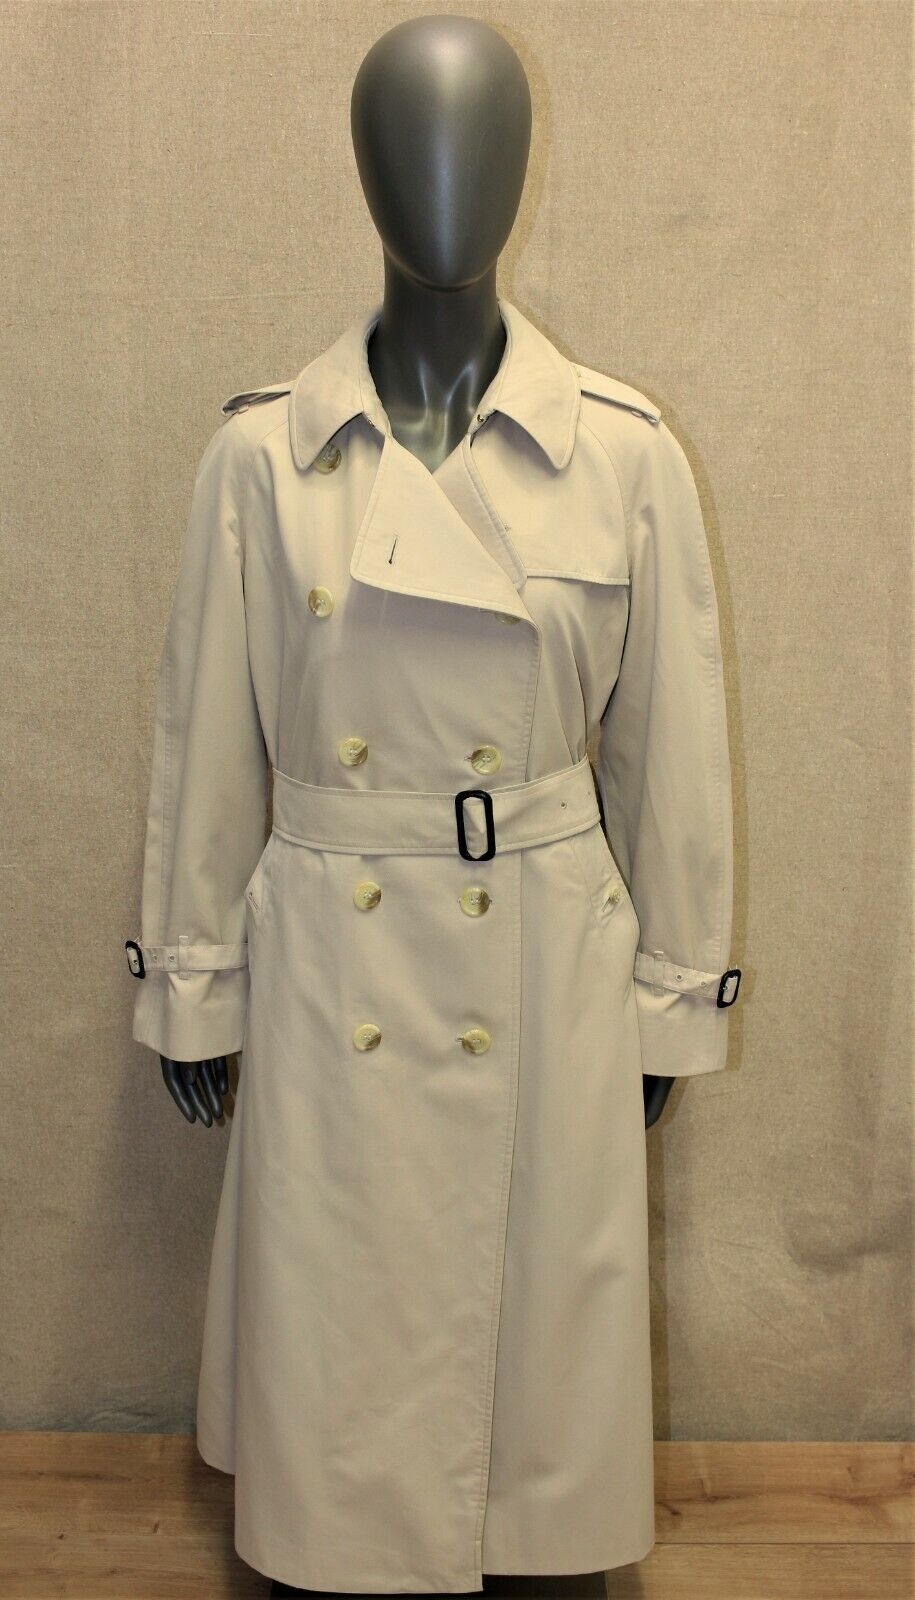 Trench imperméable femme burberry's vintage 70's beige 14 reg made in england